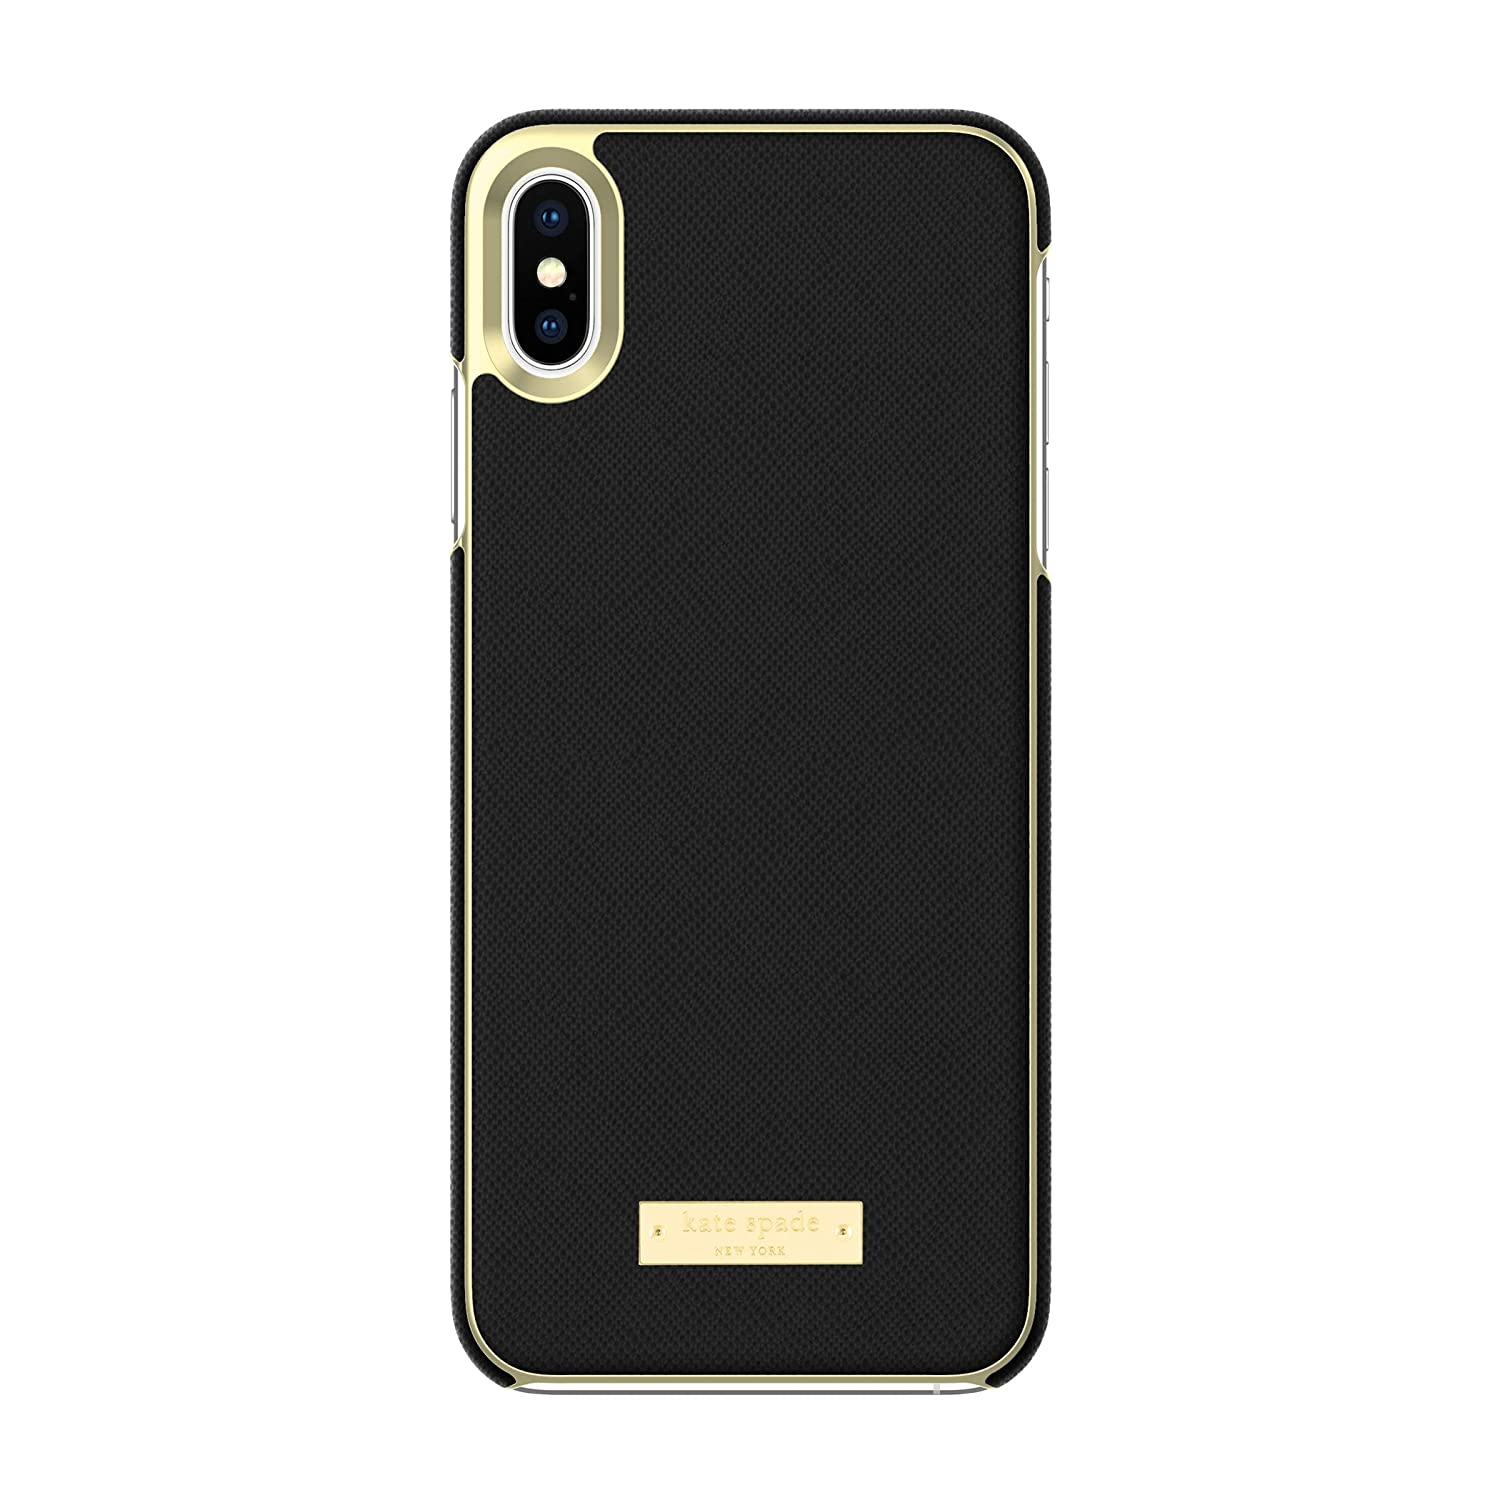 cheap for discount 492d8 7da75 Kate Spade New York Phone Case | For Apple iPhone XS Max | Protective Phone  Cases with Wrap Design and Drop Protection - Saffiano Black / Gold Logo ...